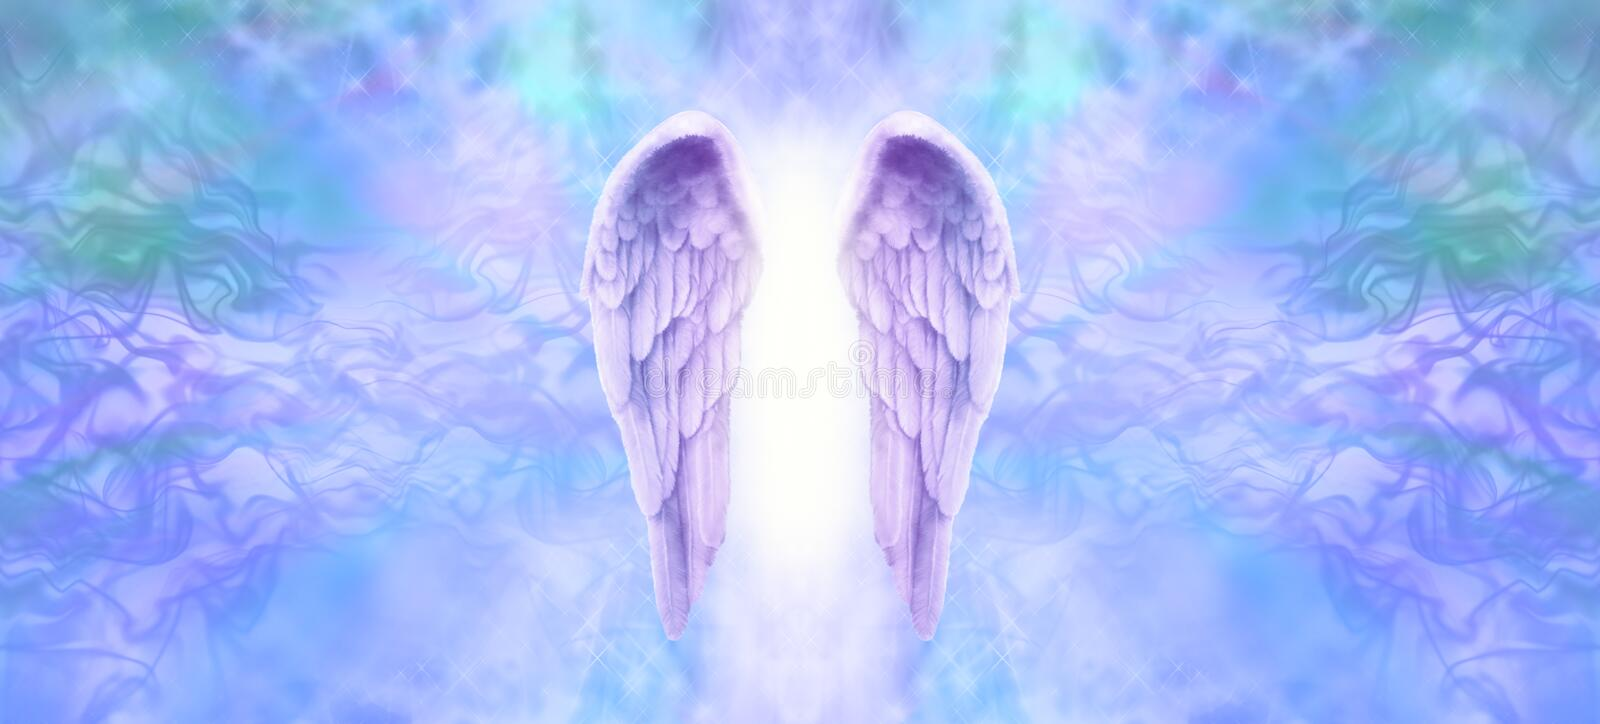 Angel Wings Banner lilla illustrazione vettoriale